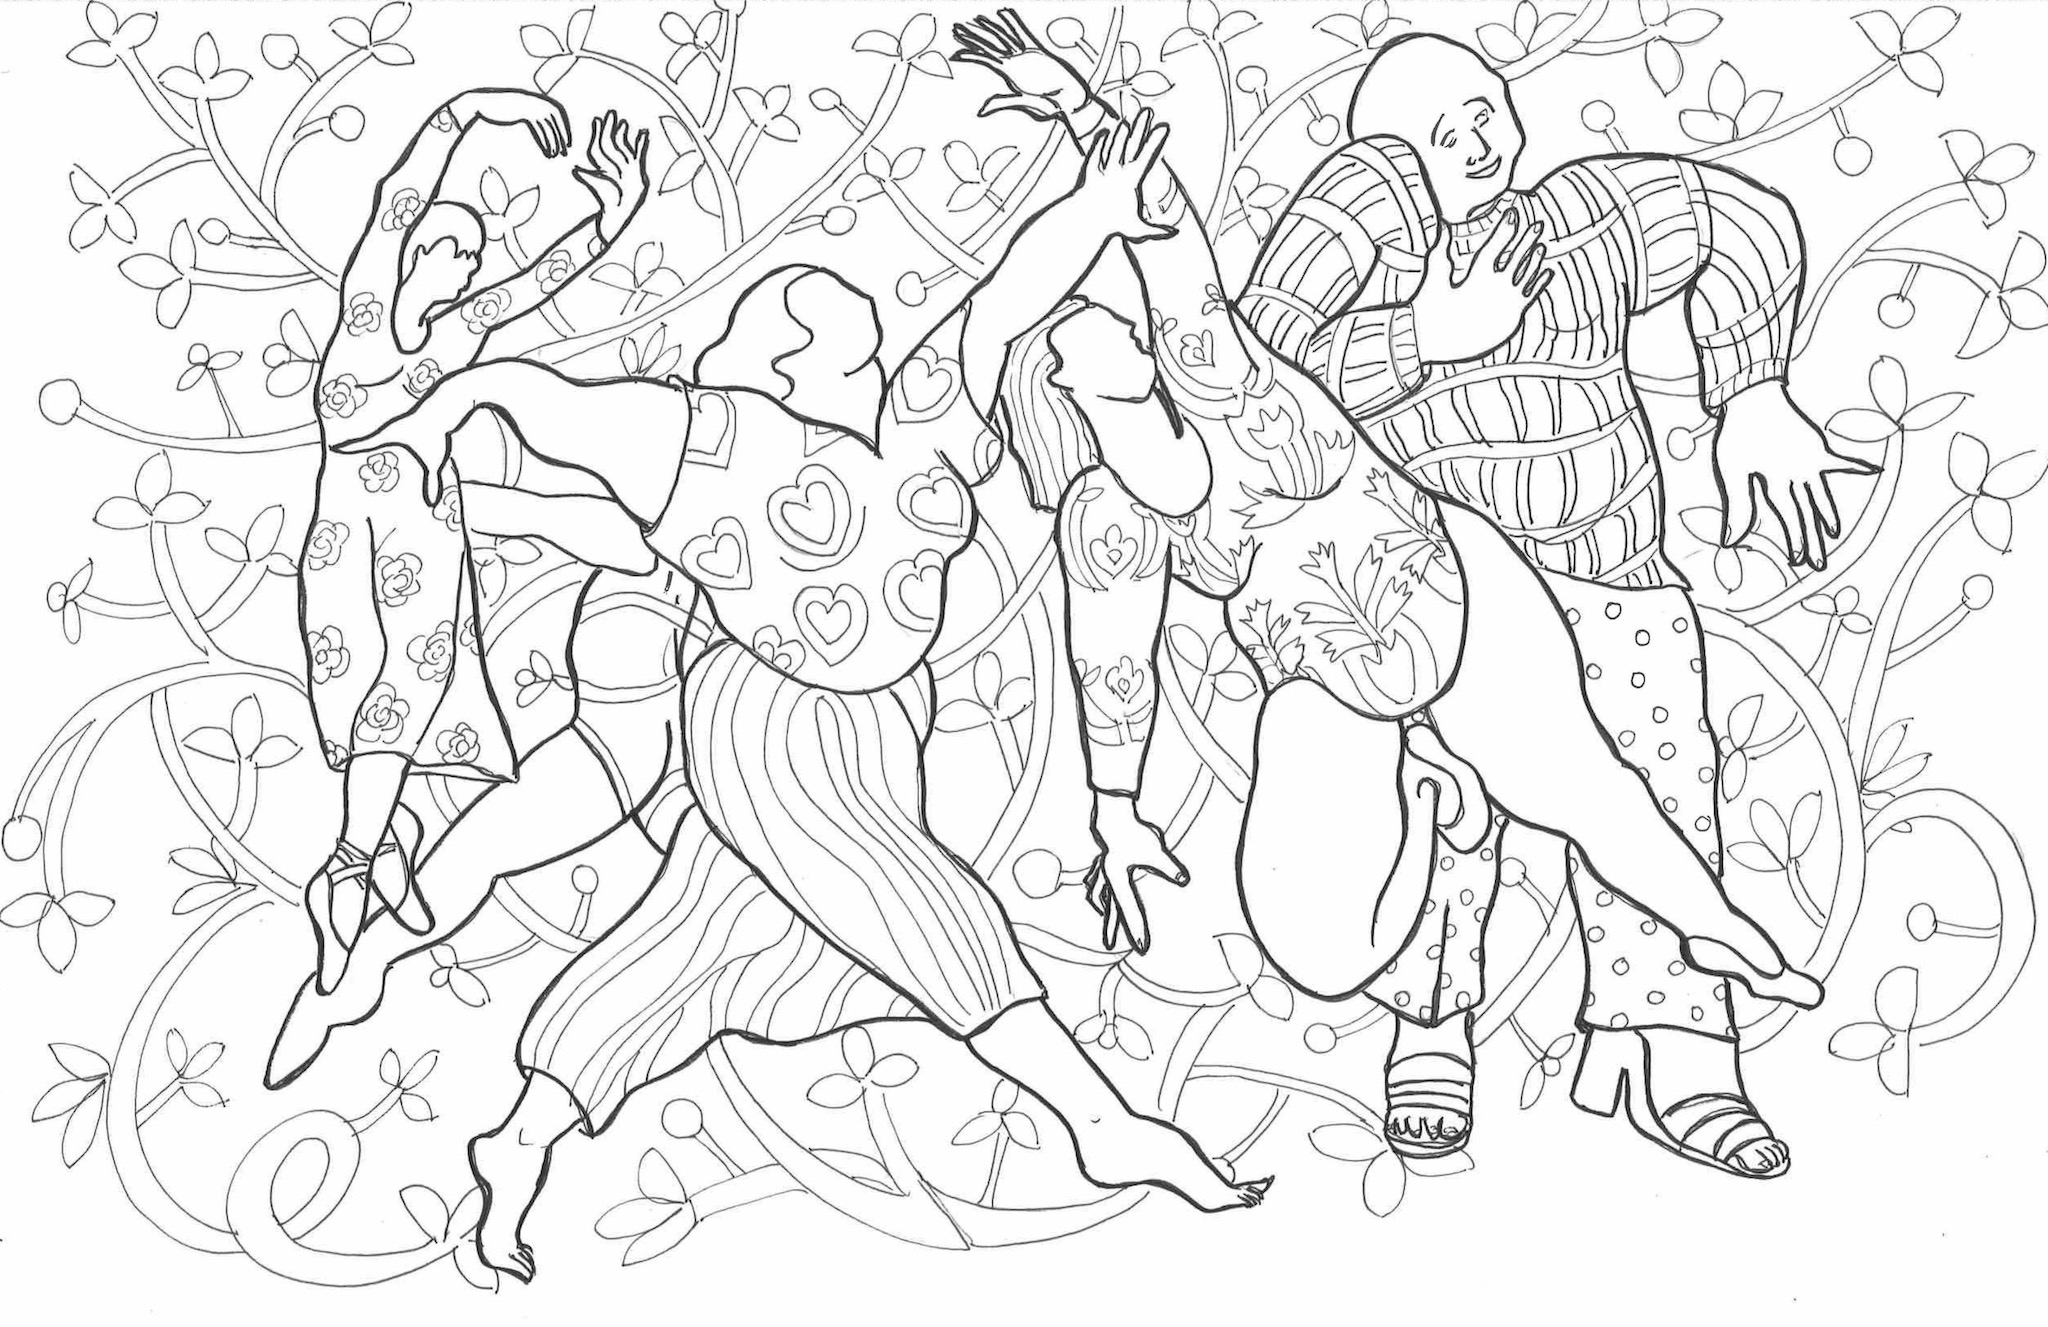 Daily Dance: Adult Coloring Book